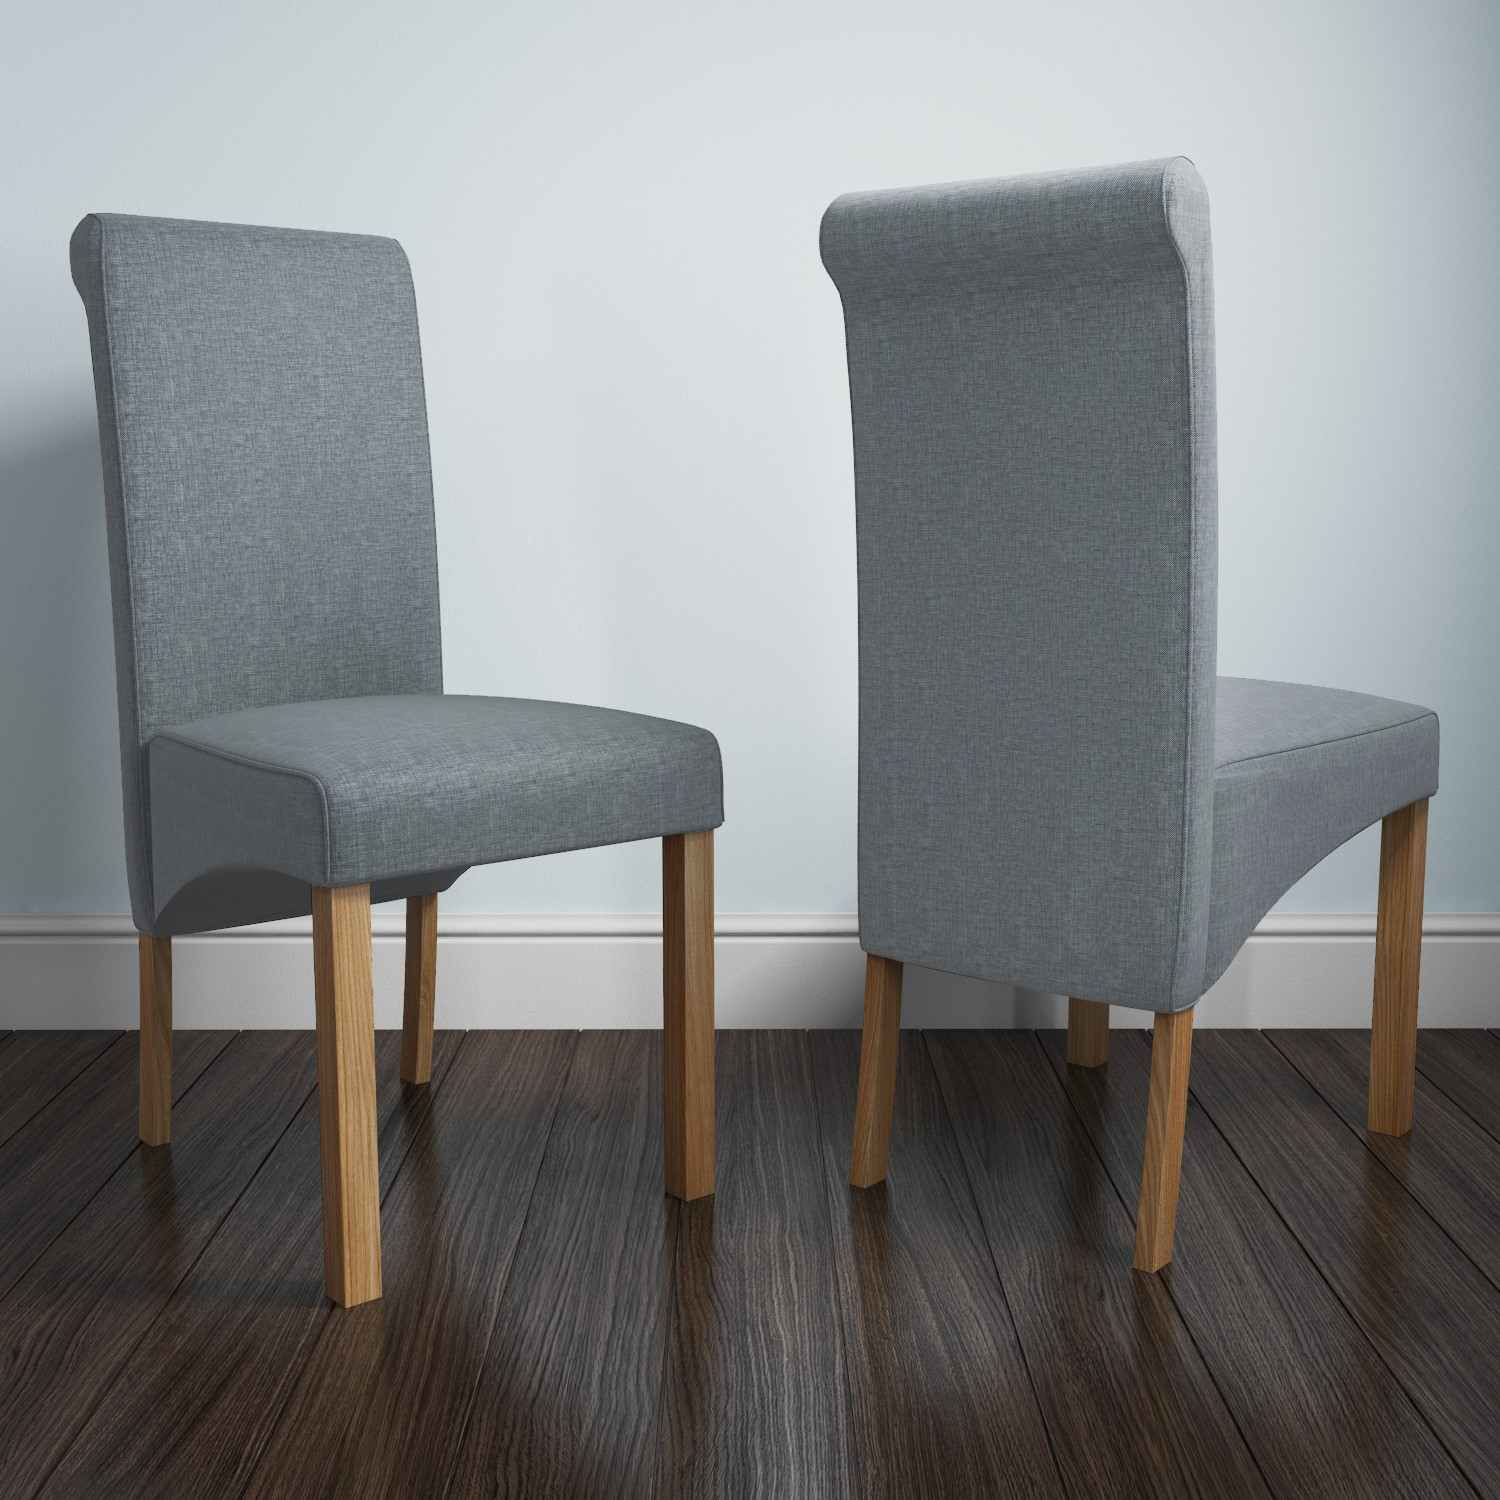 Fabric Dining Chairs in Grey with Oak Legs Home Furniture ...